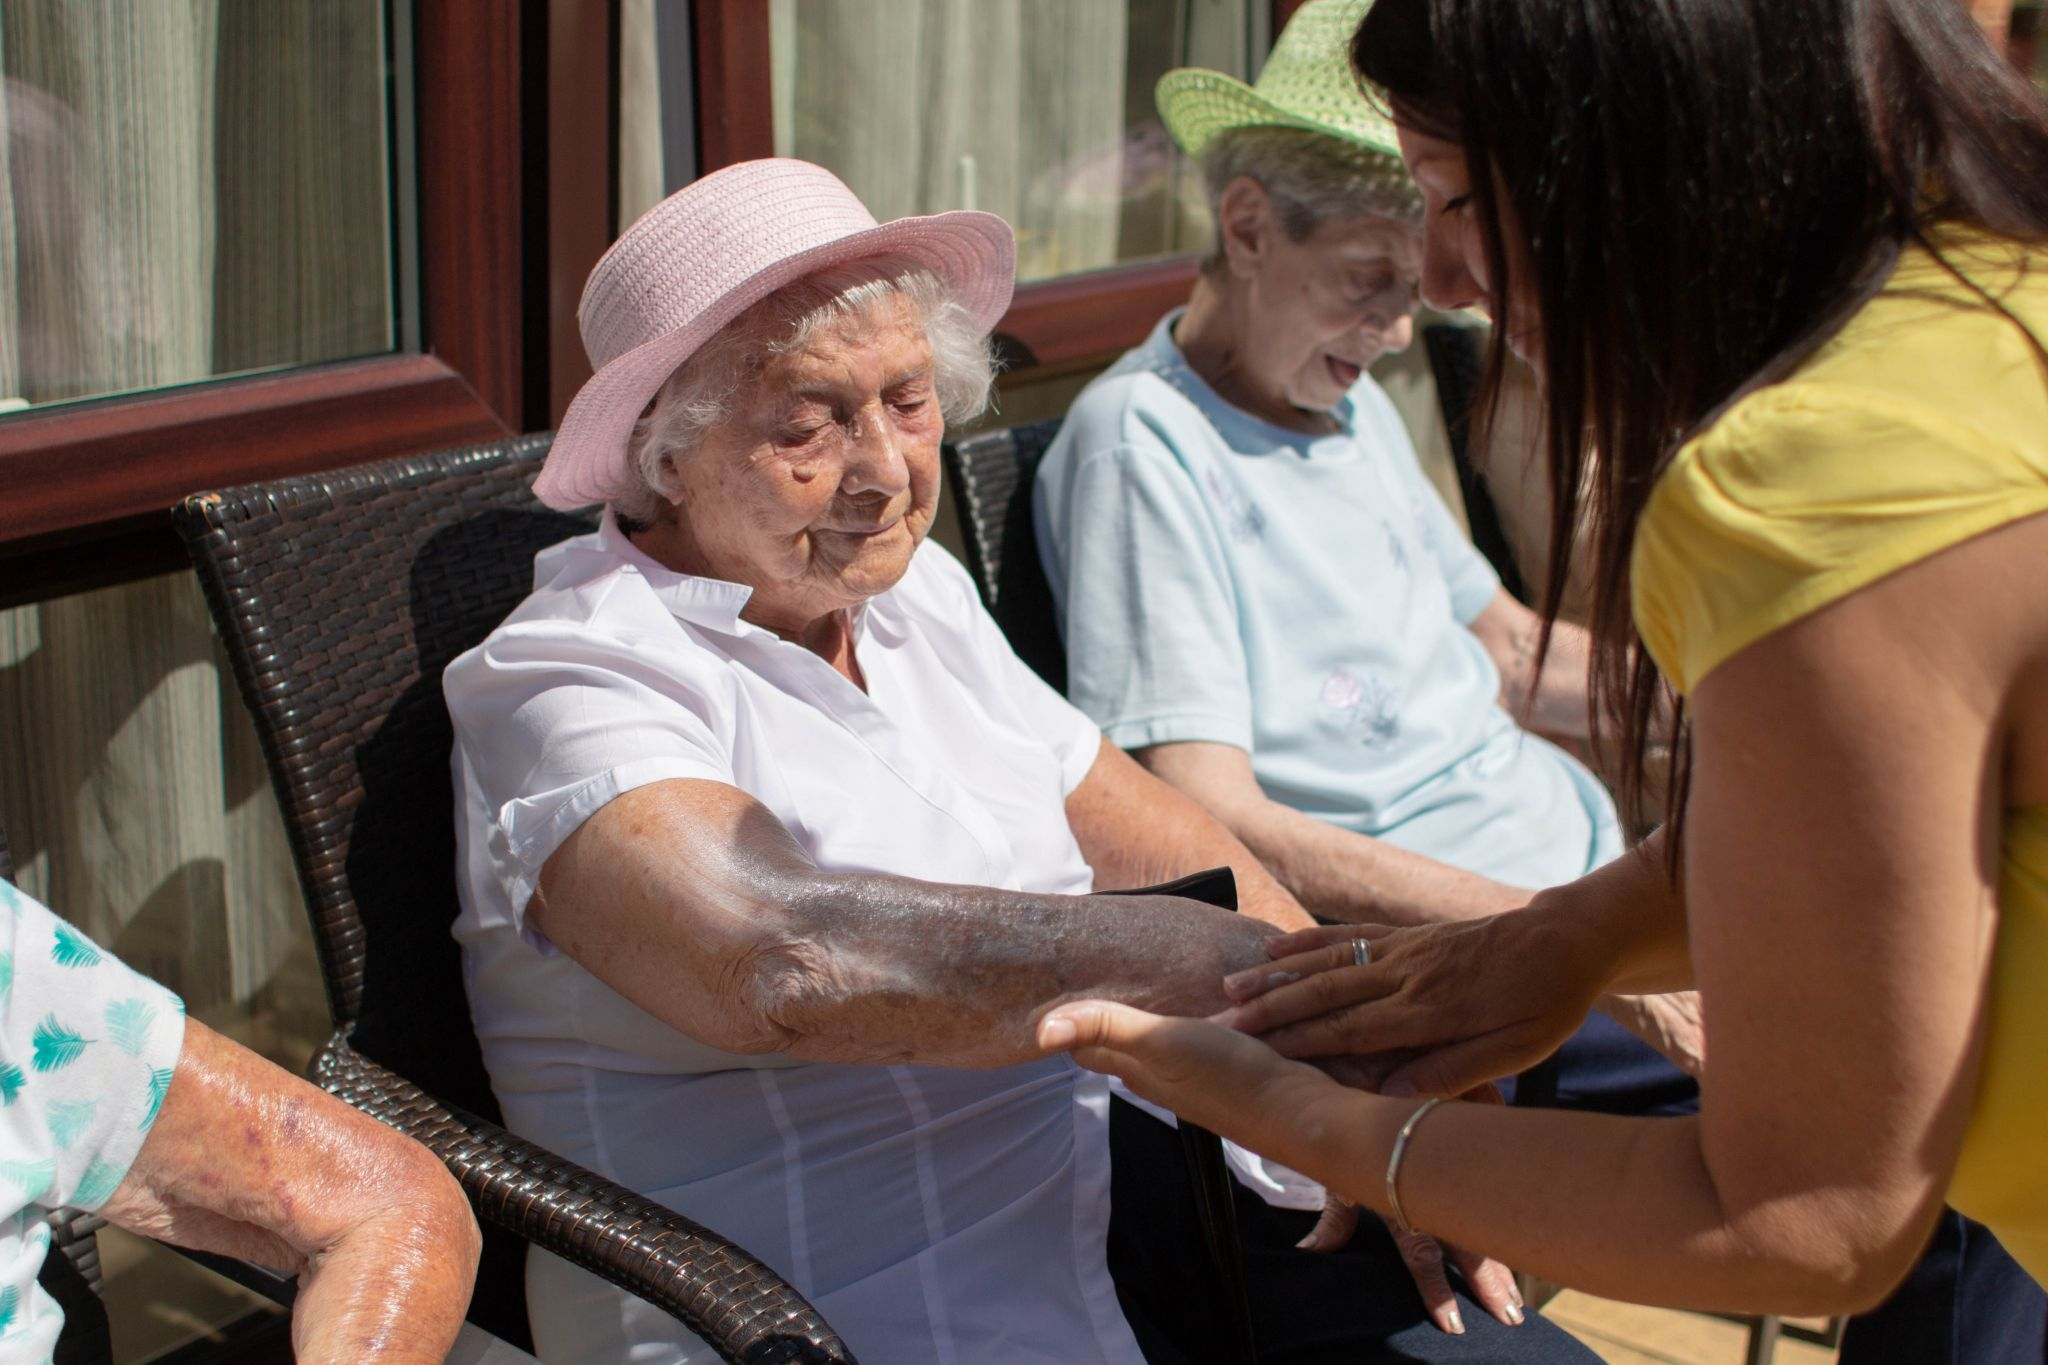 craig healthcare residents lifestyle photography hannah layford resident being helped with sun cream